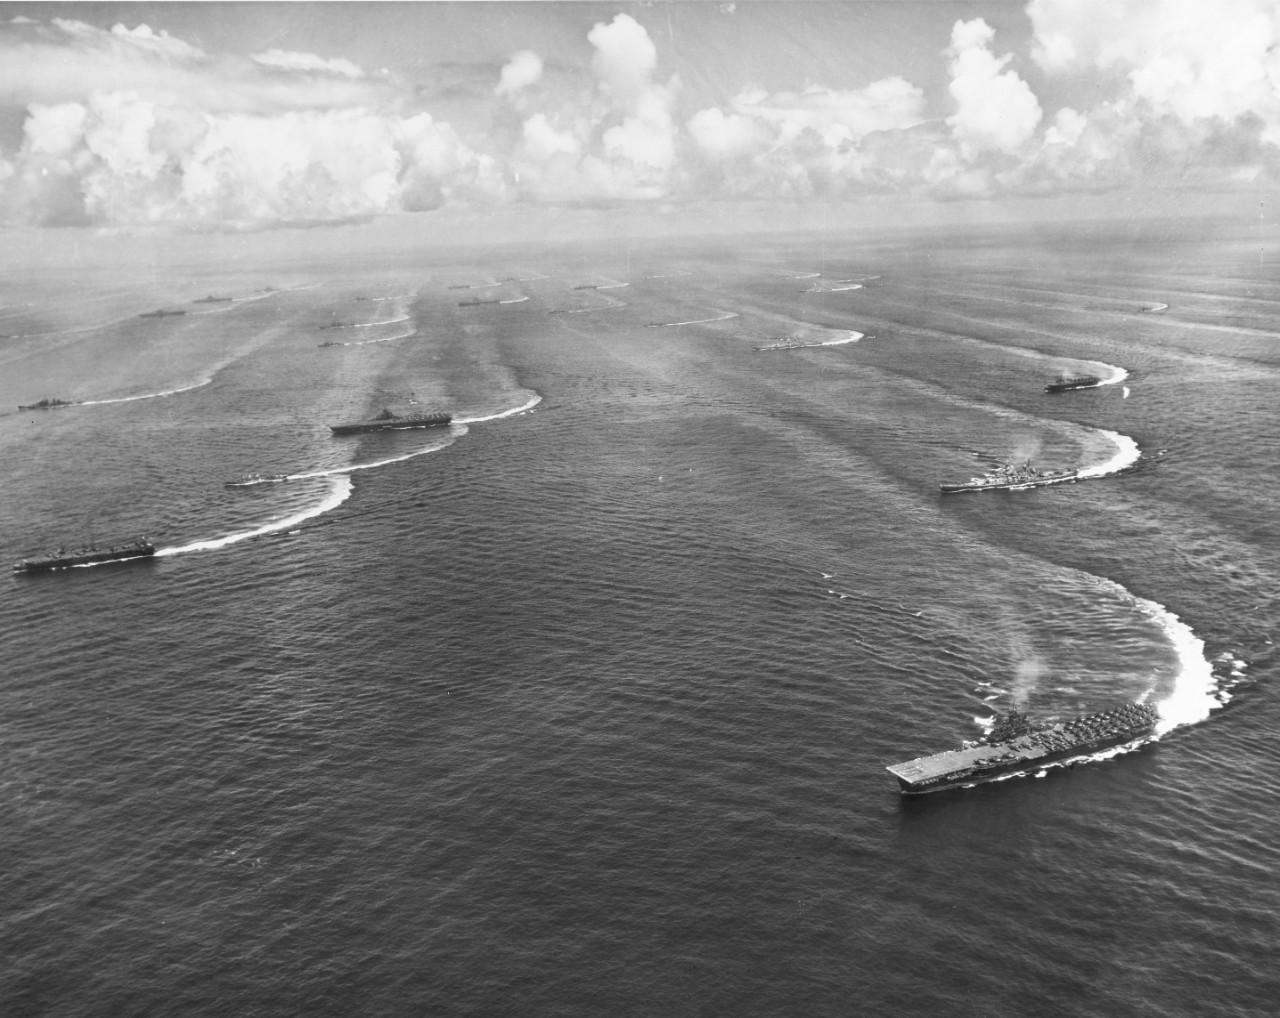 Photo #: 80-G-278815  Task Force 38, of the U.S. Third Fleet